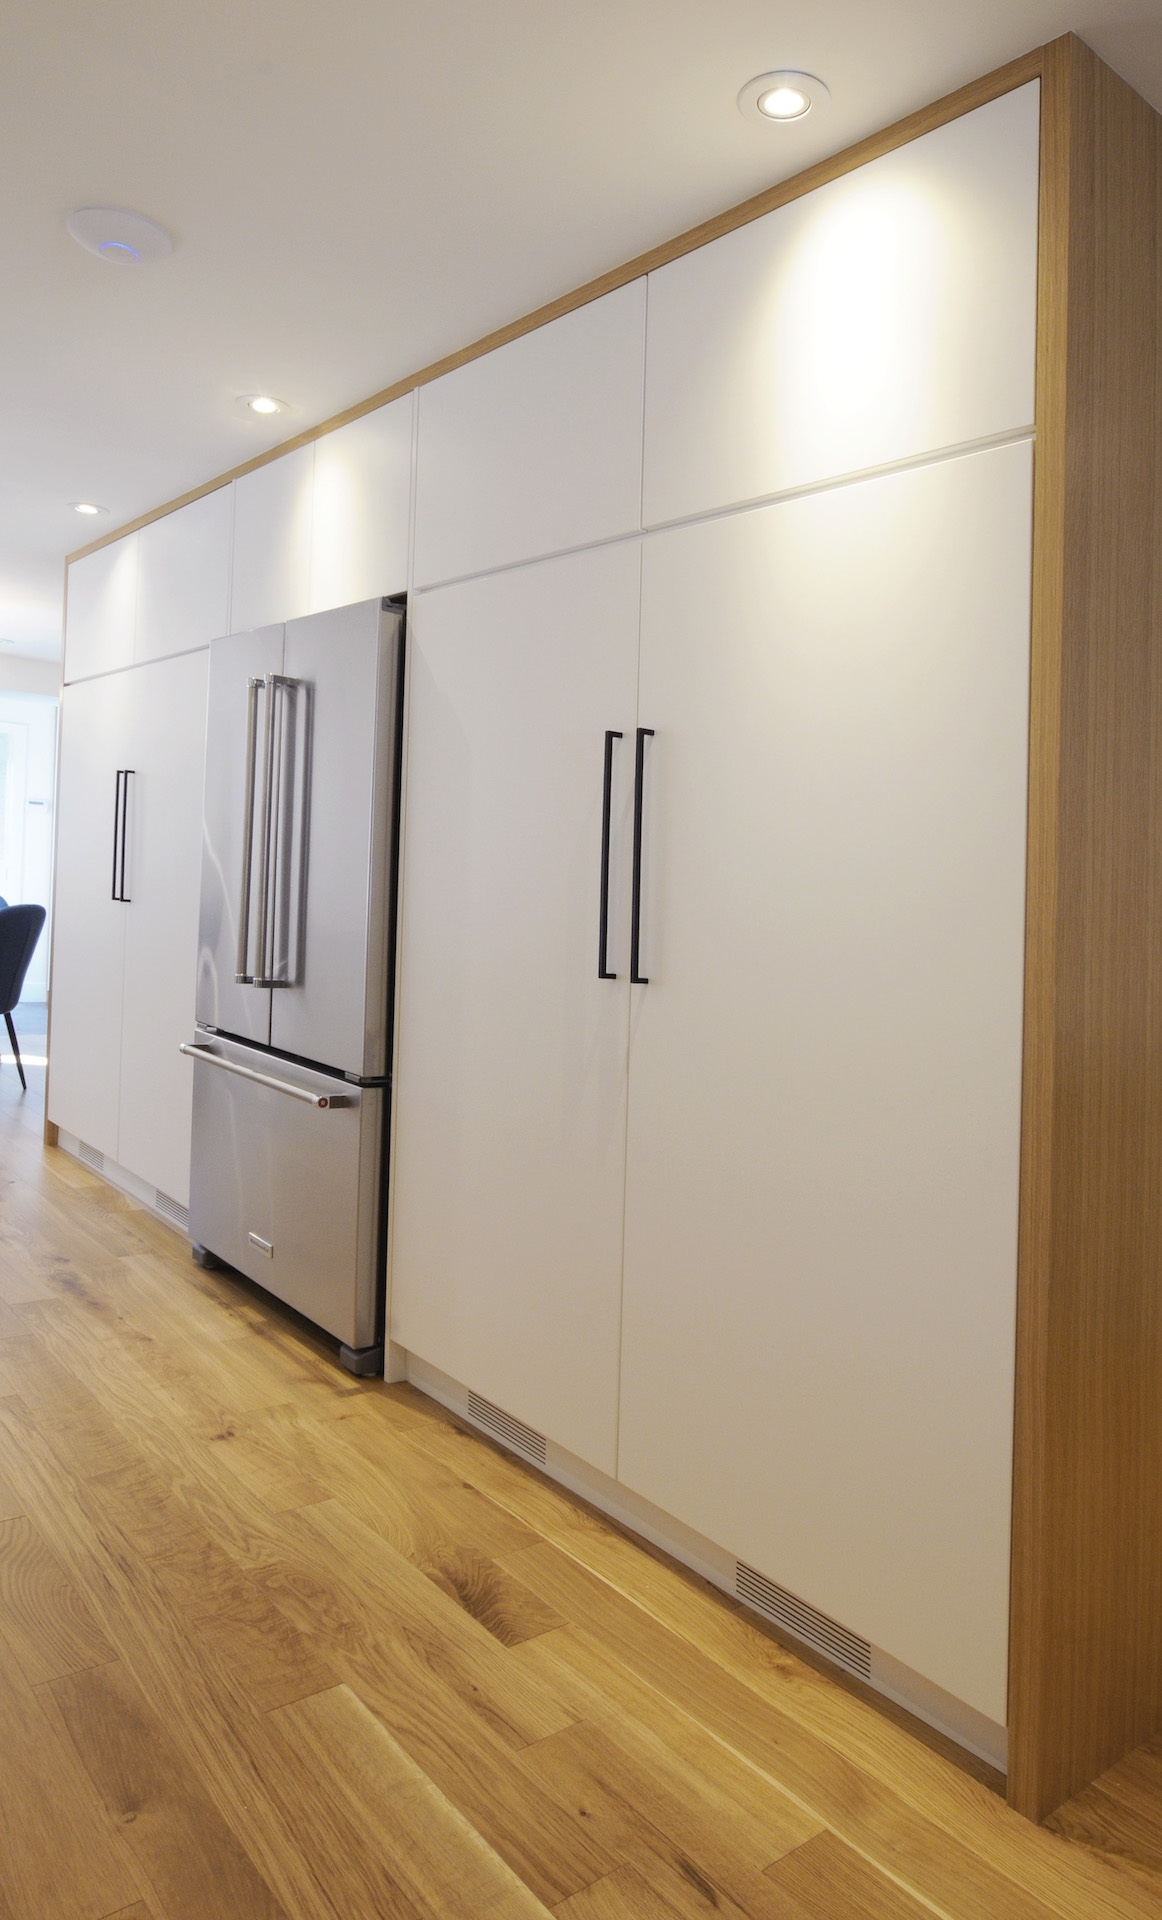 Light wood floor with white cabinets and steel fridge